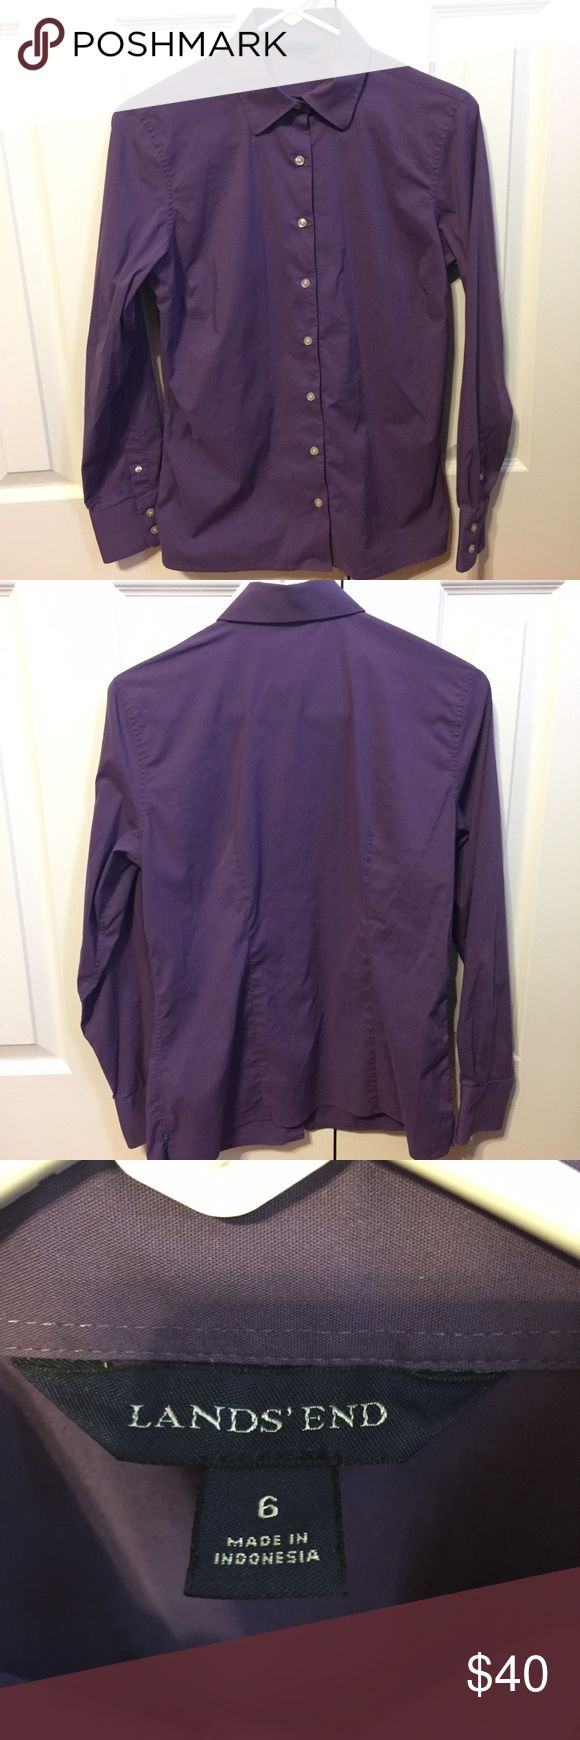 ✨Lands' End Purple Dress Shirt Size 6✨ A beautiful purple button-down dress shirt by Lands' End in womens size 6! Has been worn only a handful of times, and in extremely good condition. Still has two additional buttons on the tag on the inside.  Consider looking at the rest of my store, I have a 20% bundle discount and consider most good offers! Lands' End Tops Button Down Shirts